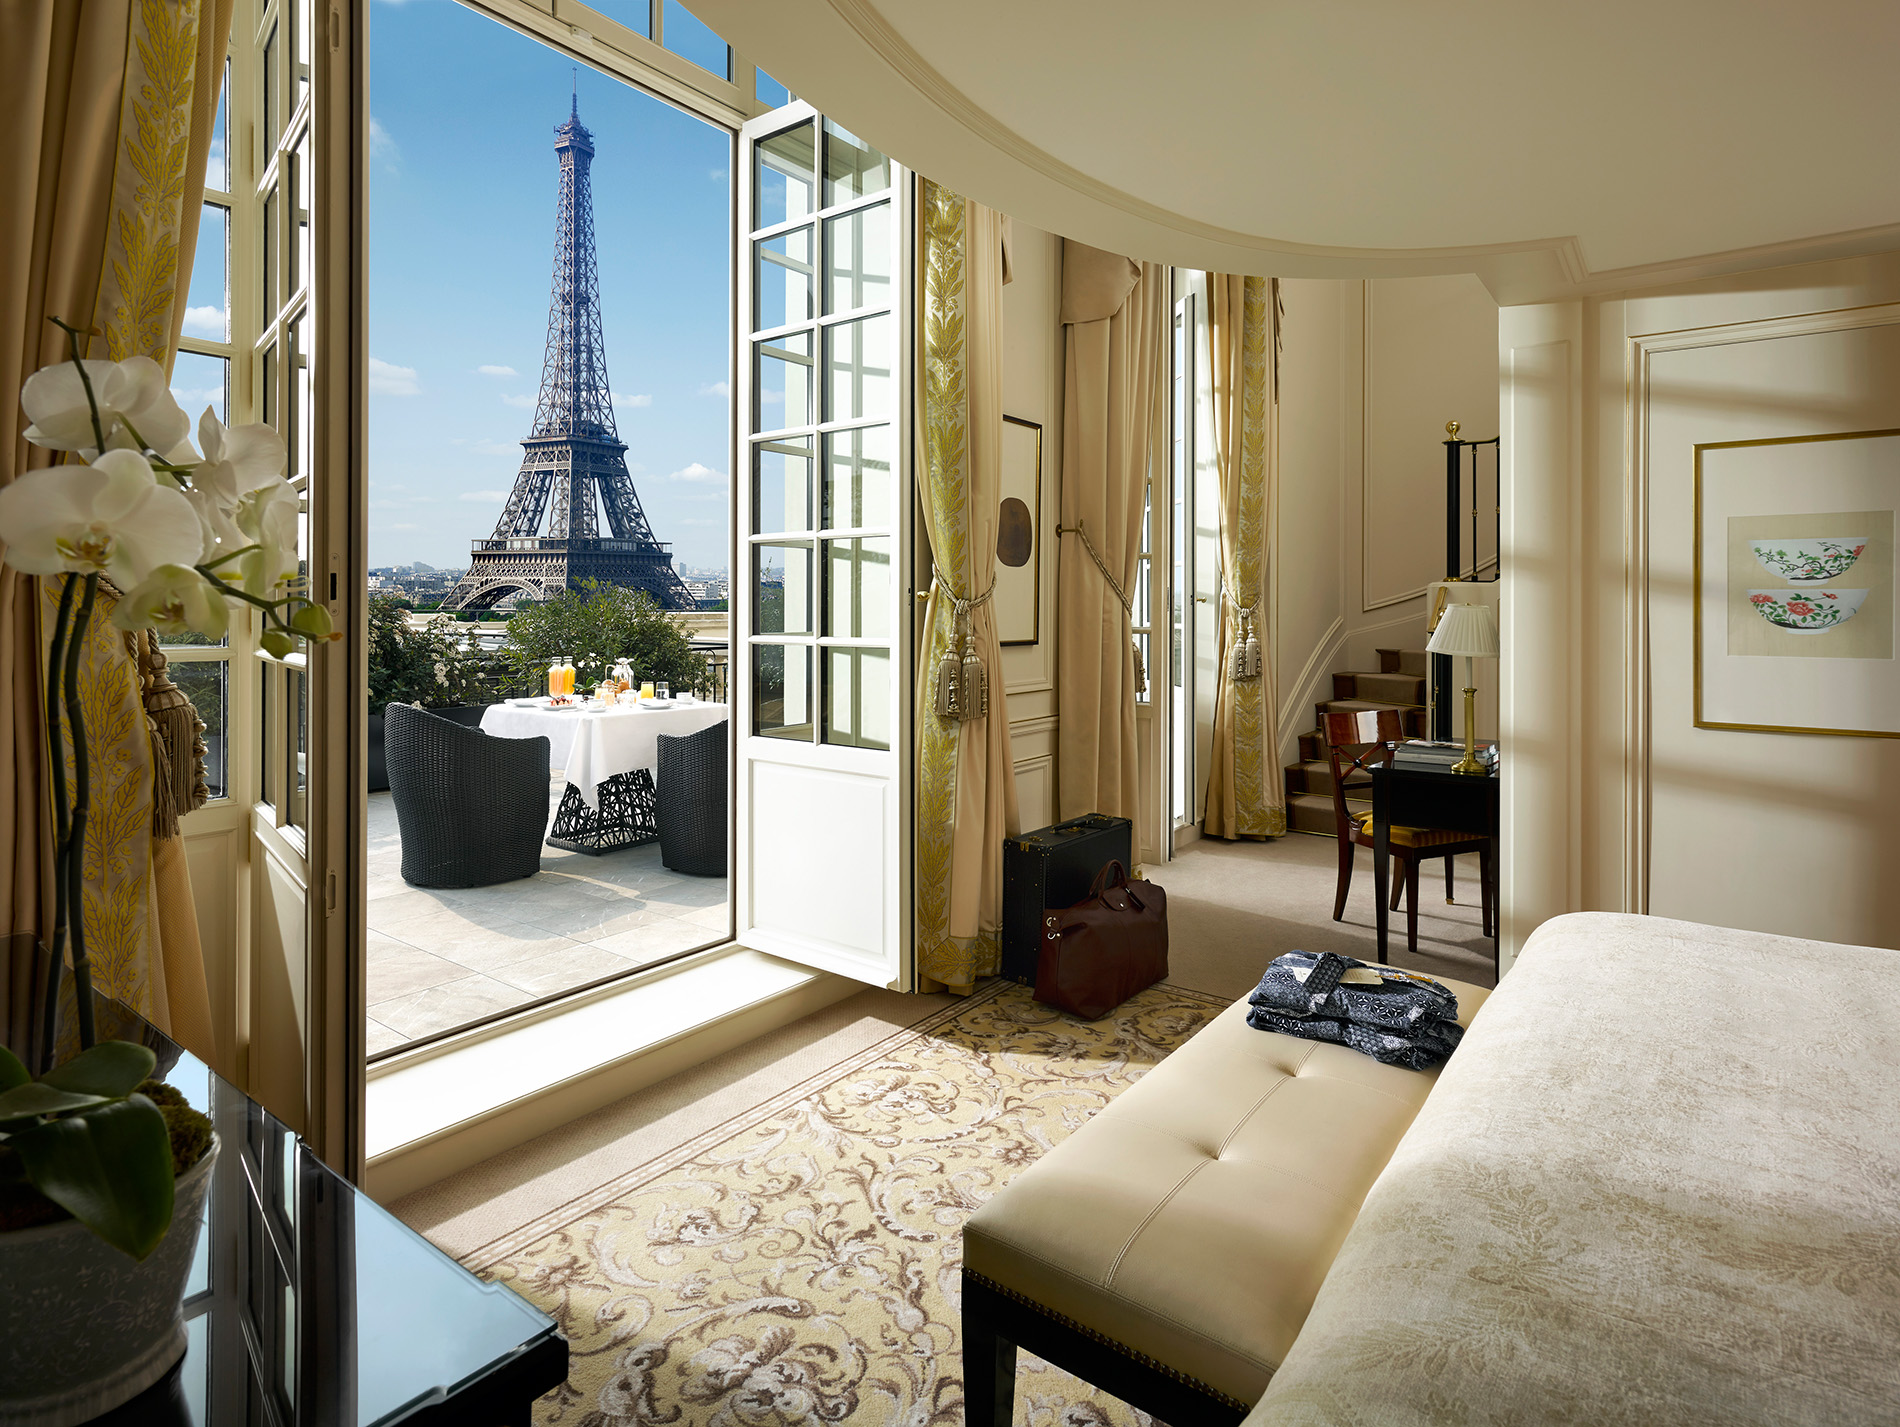 Duplex terrace Eiffel tower view Suite